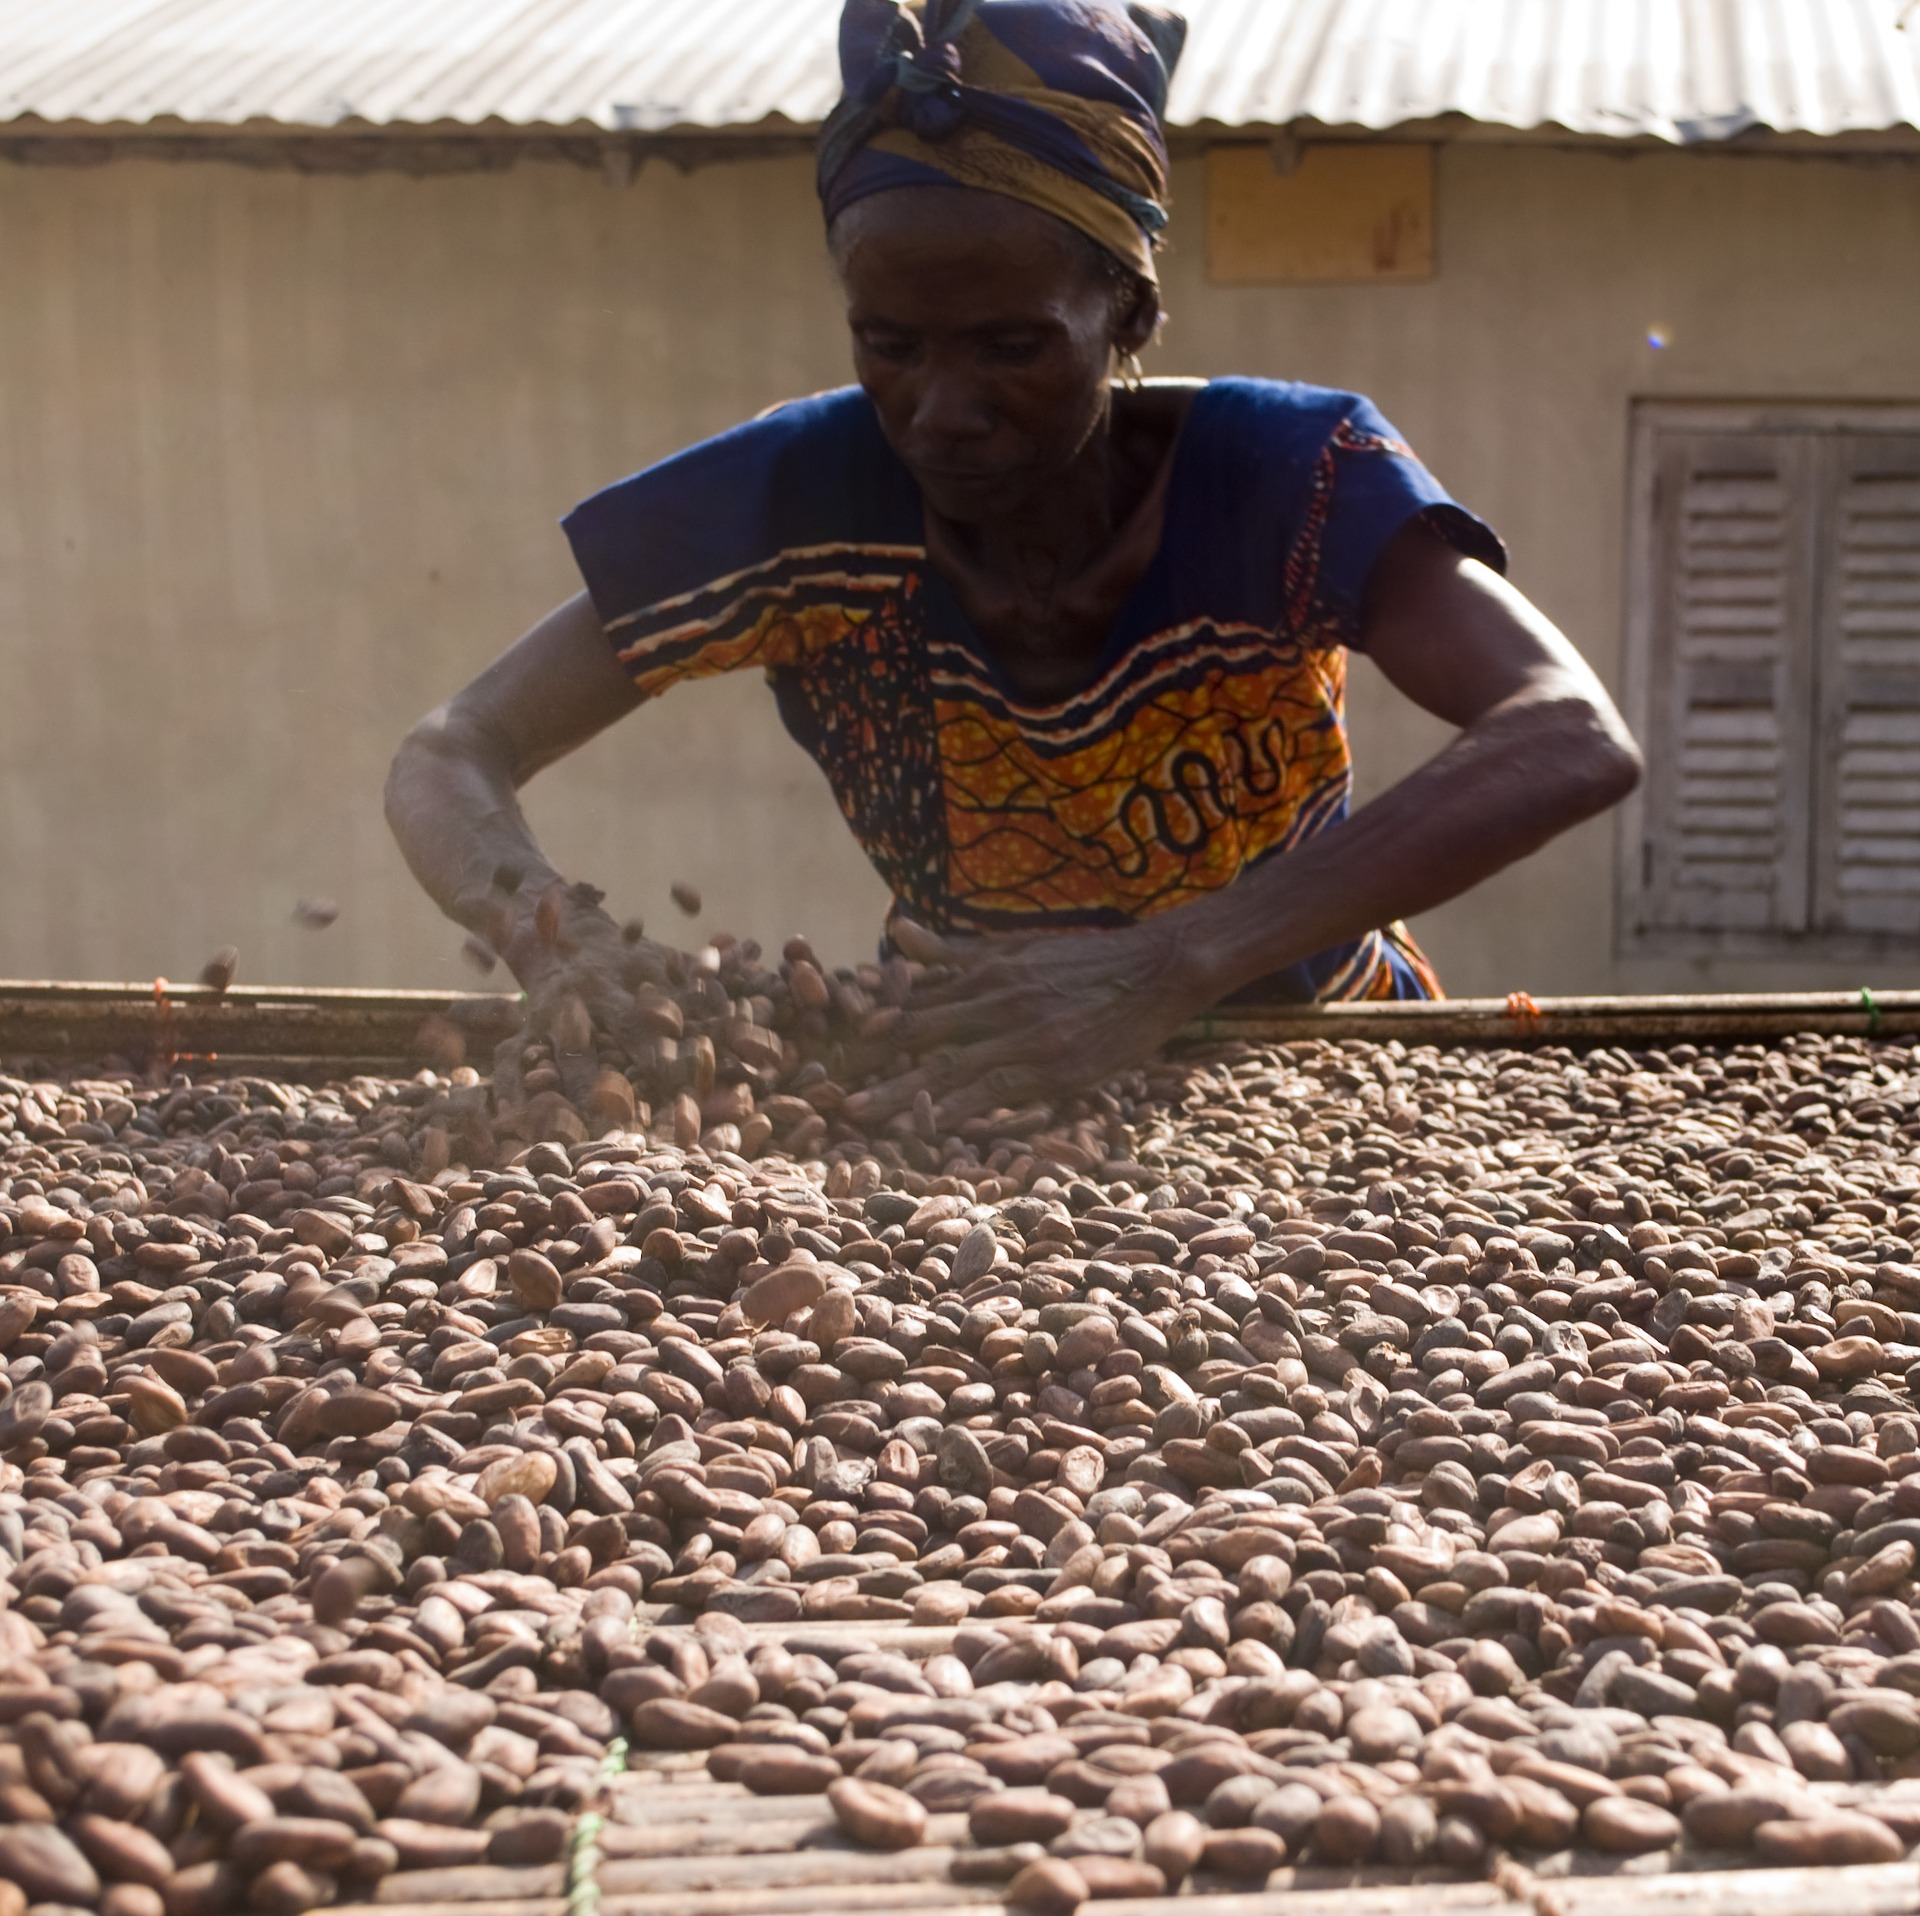 Cacao beans drying in Africa